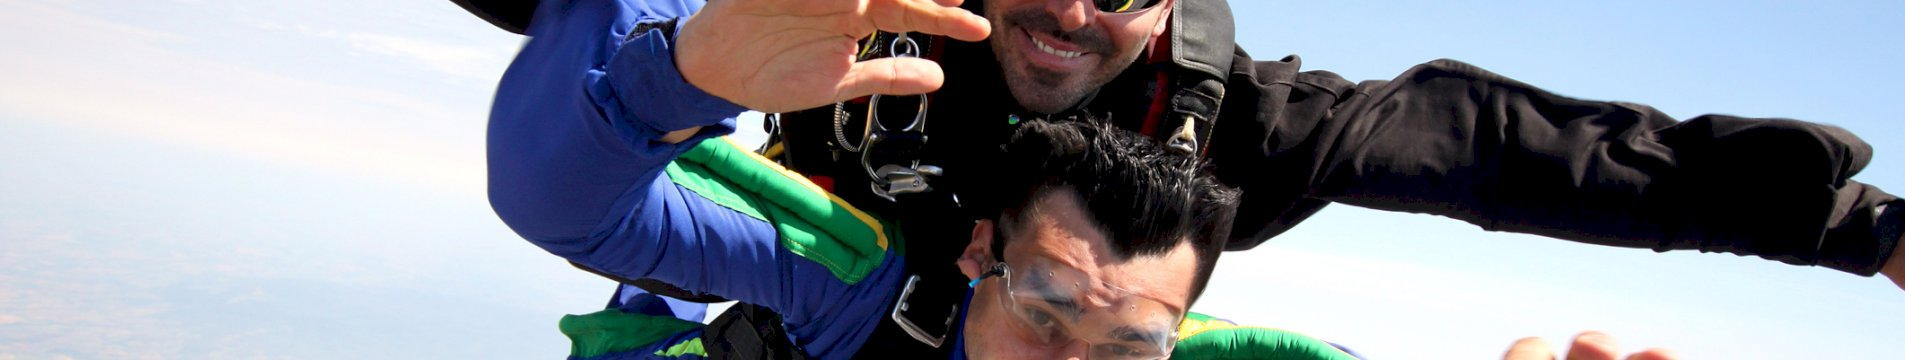 two guys sky diving